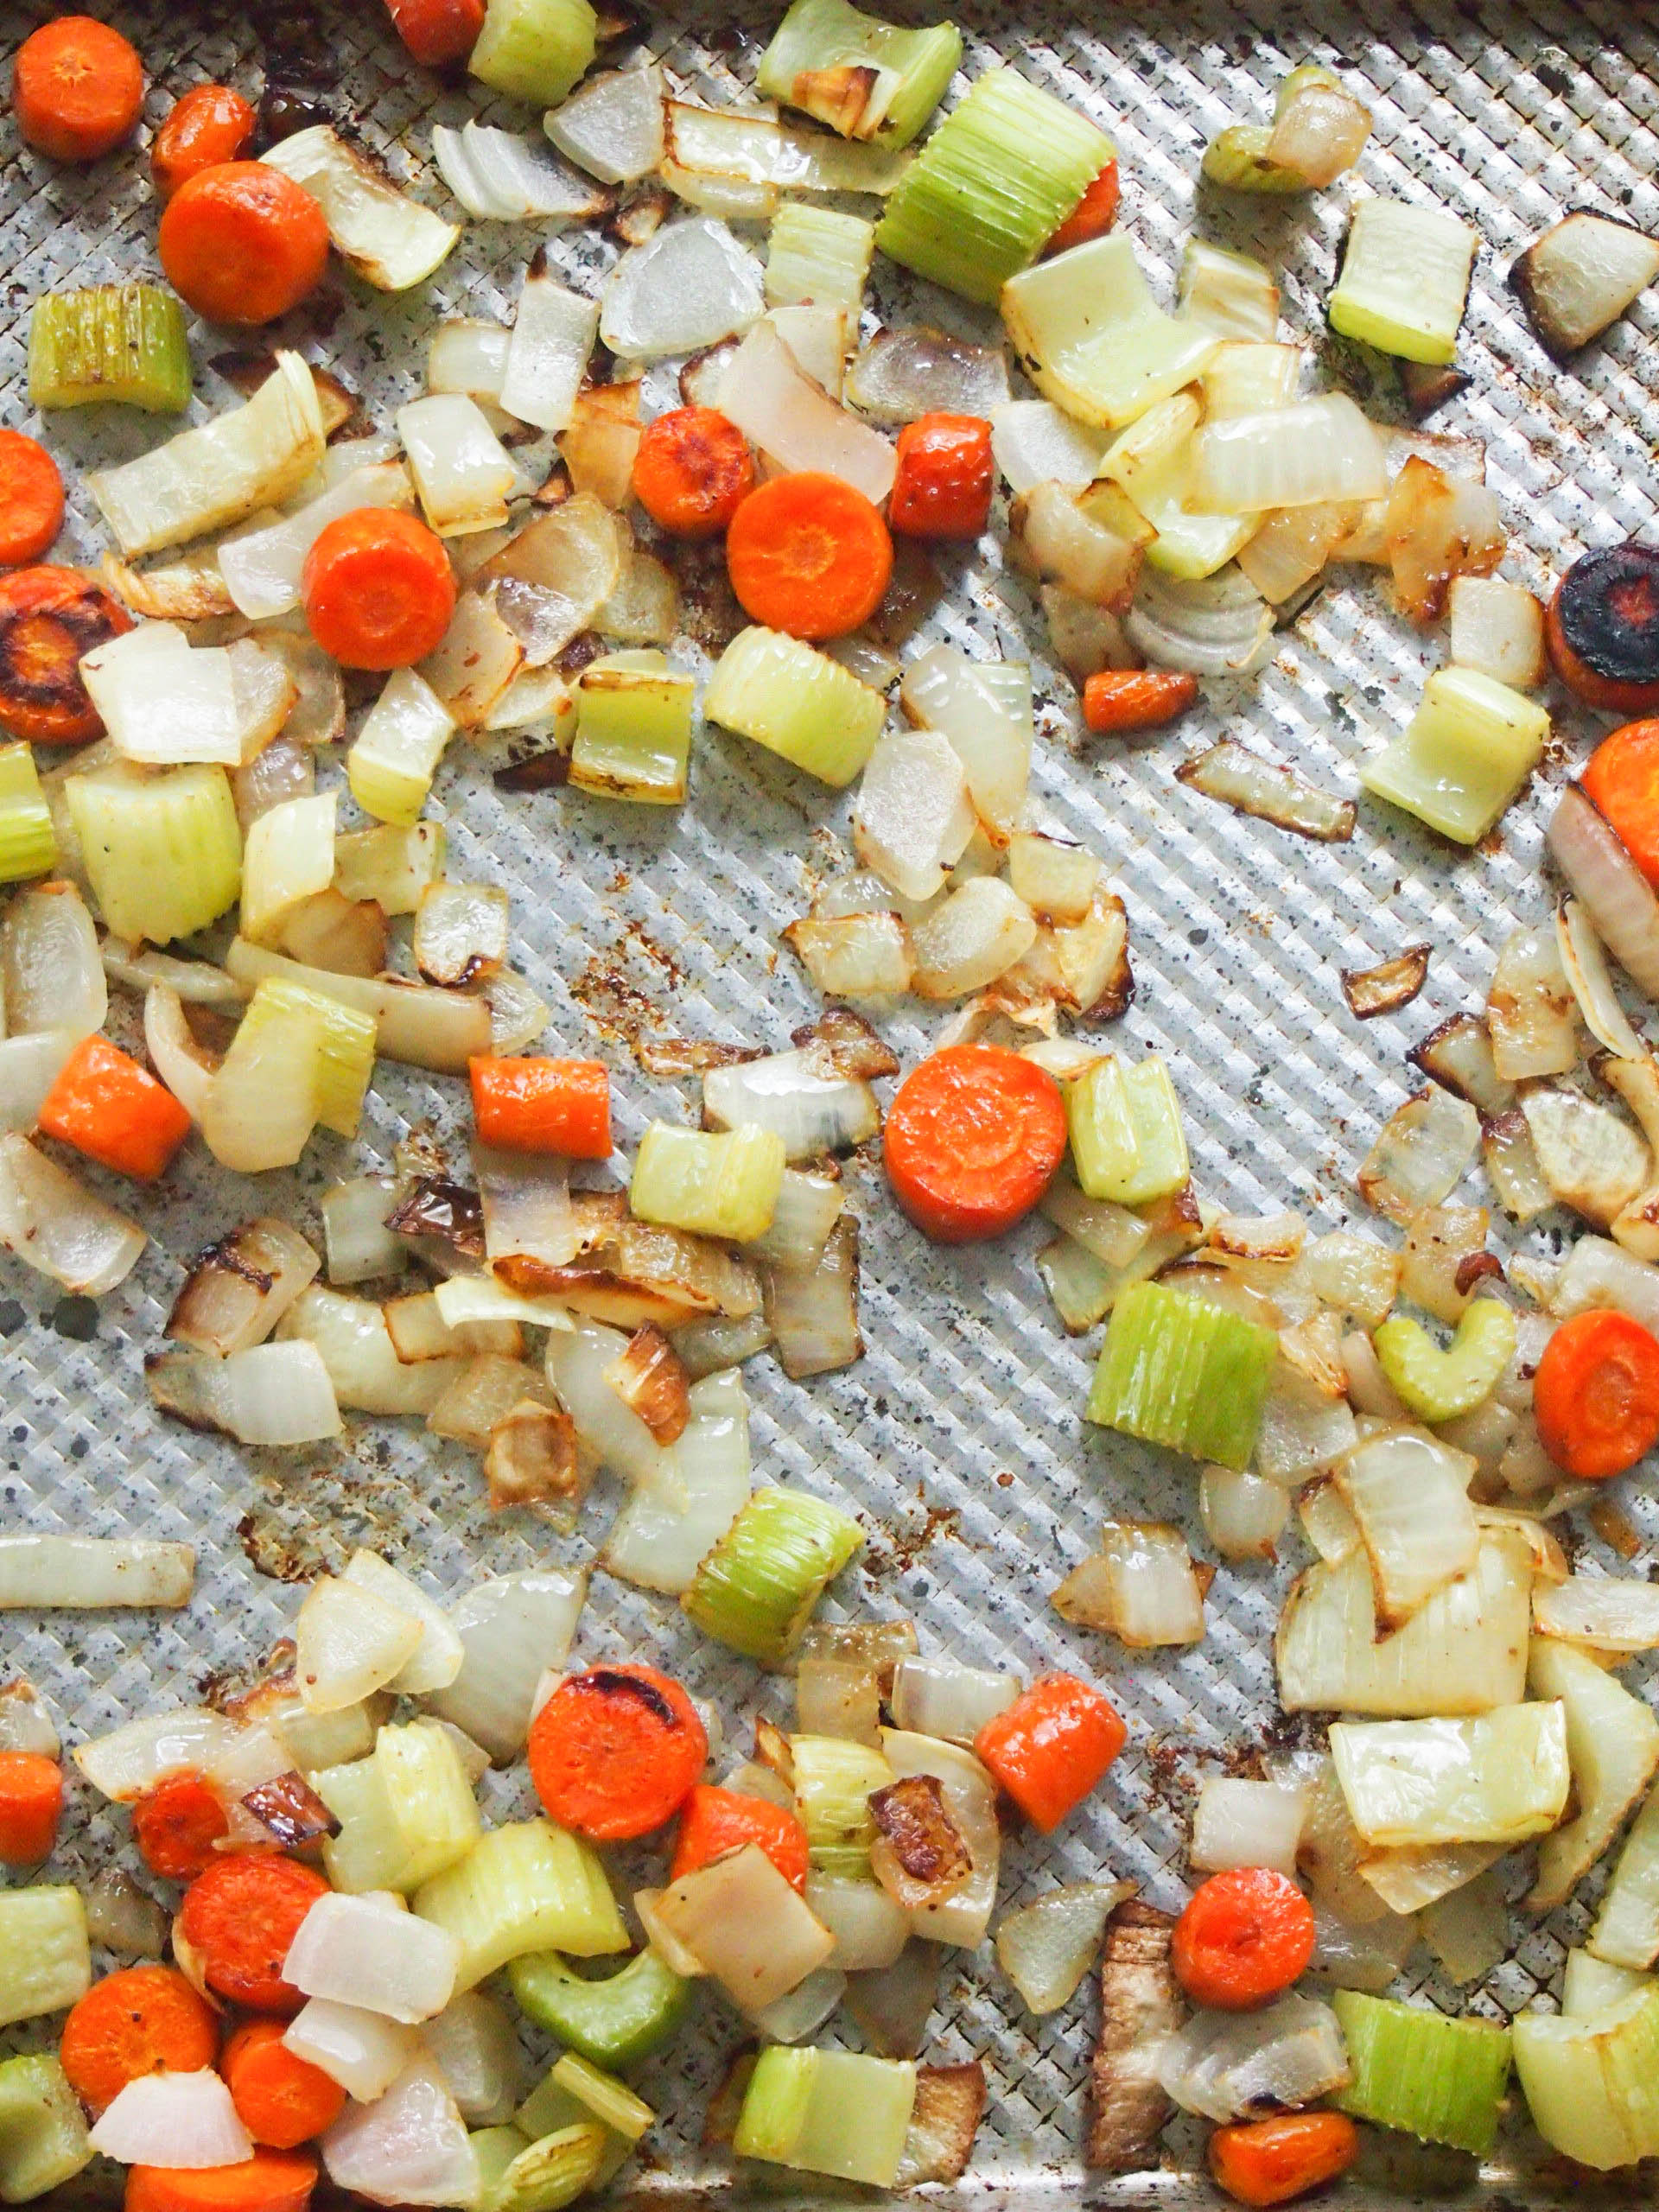 Roasting vegetables before making broth brings out the most flavor.